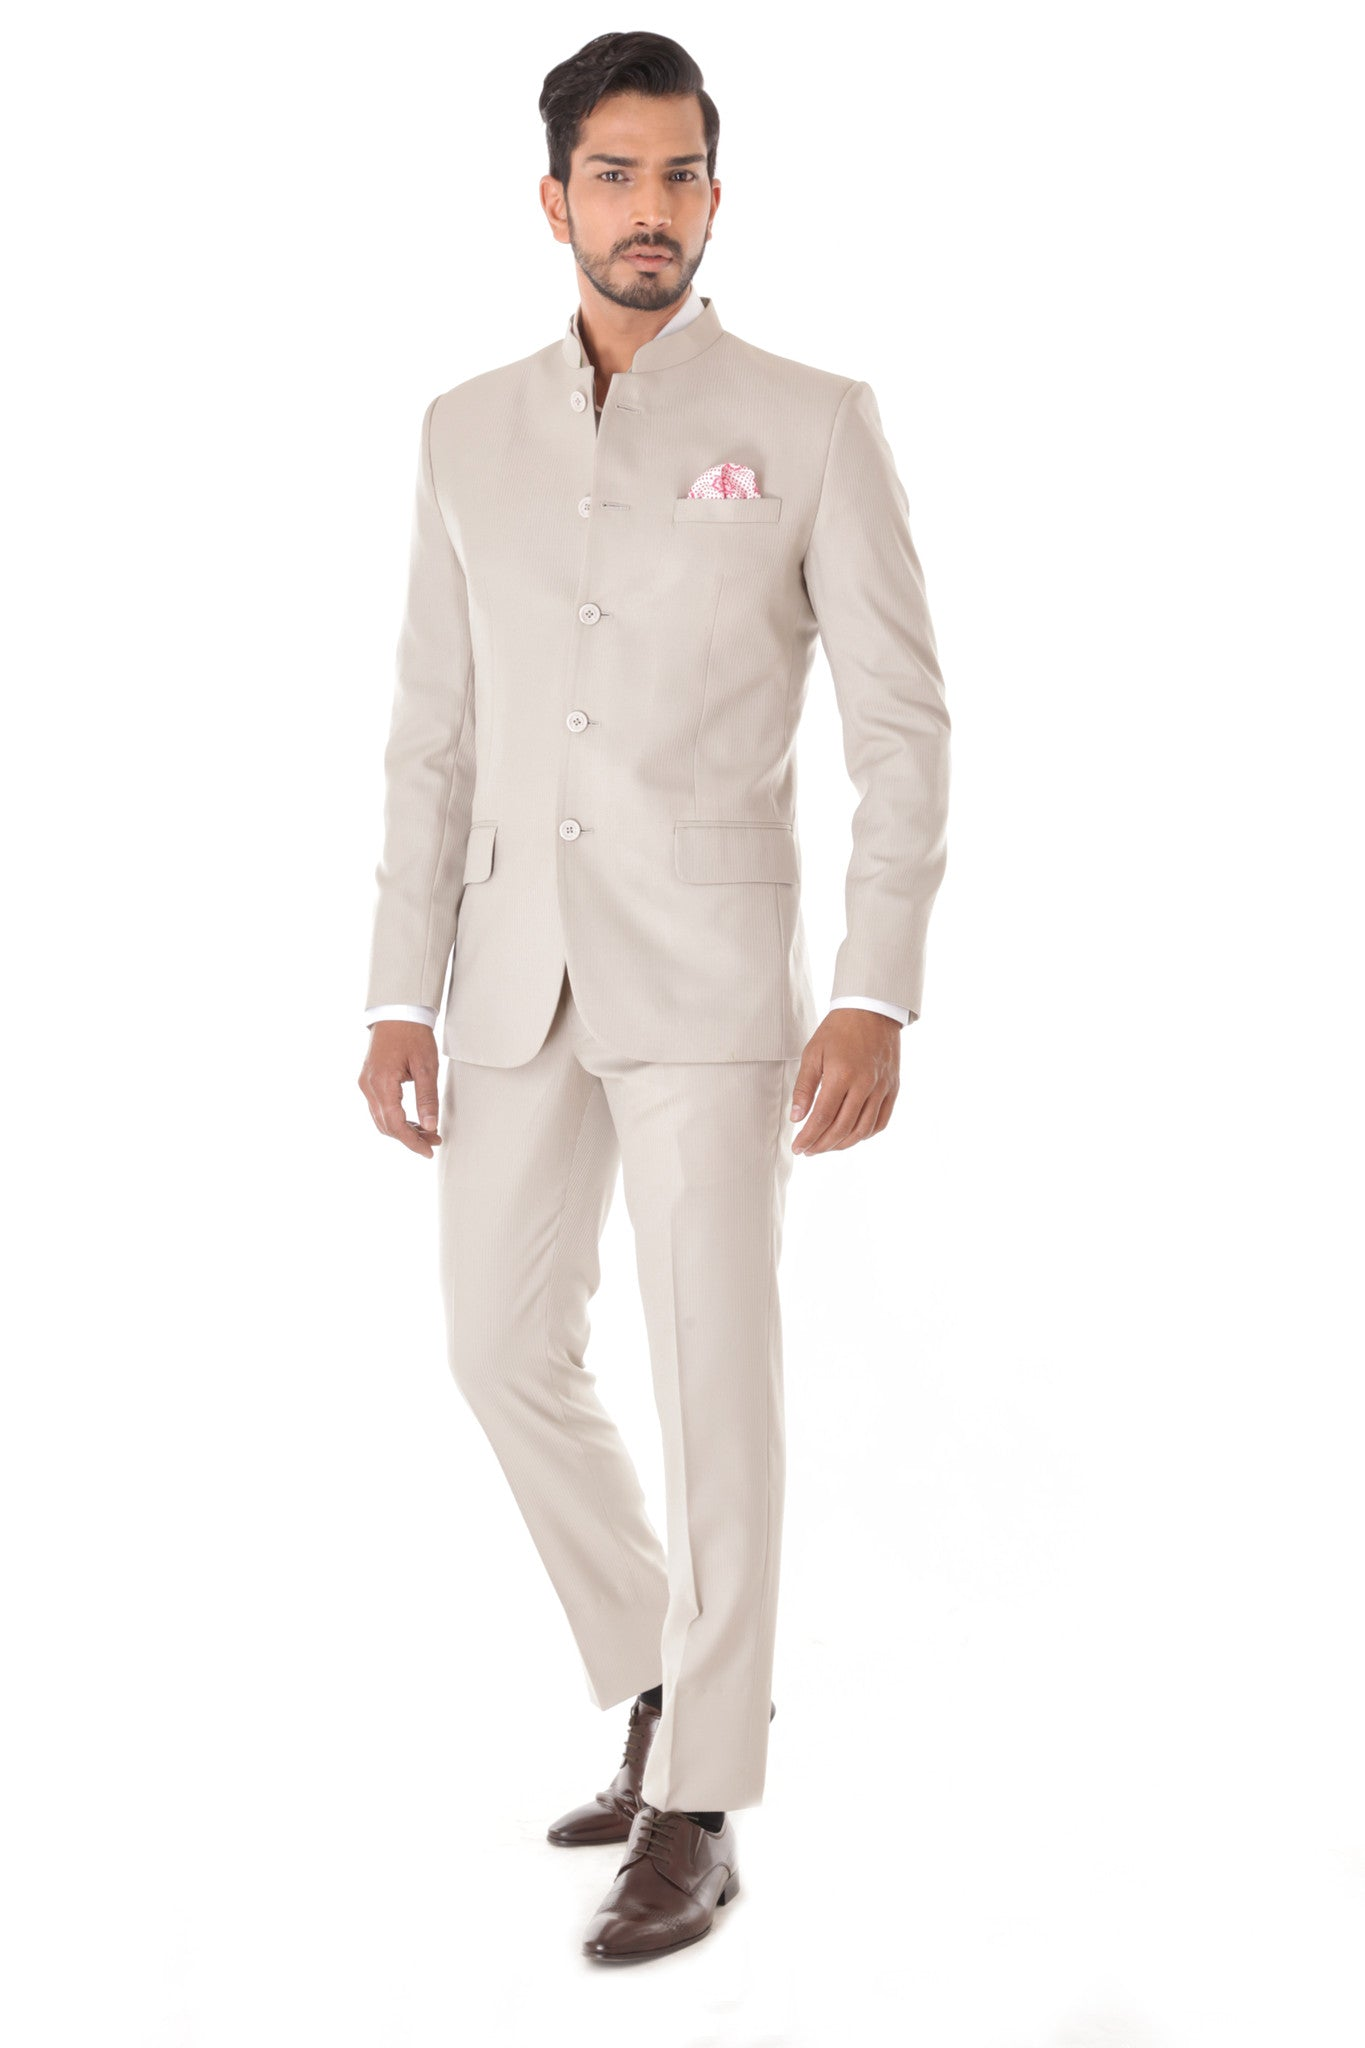 Classic Off white Bandhgala Suit with Pocket Square